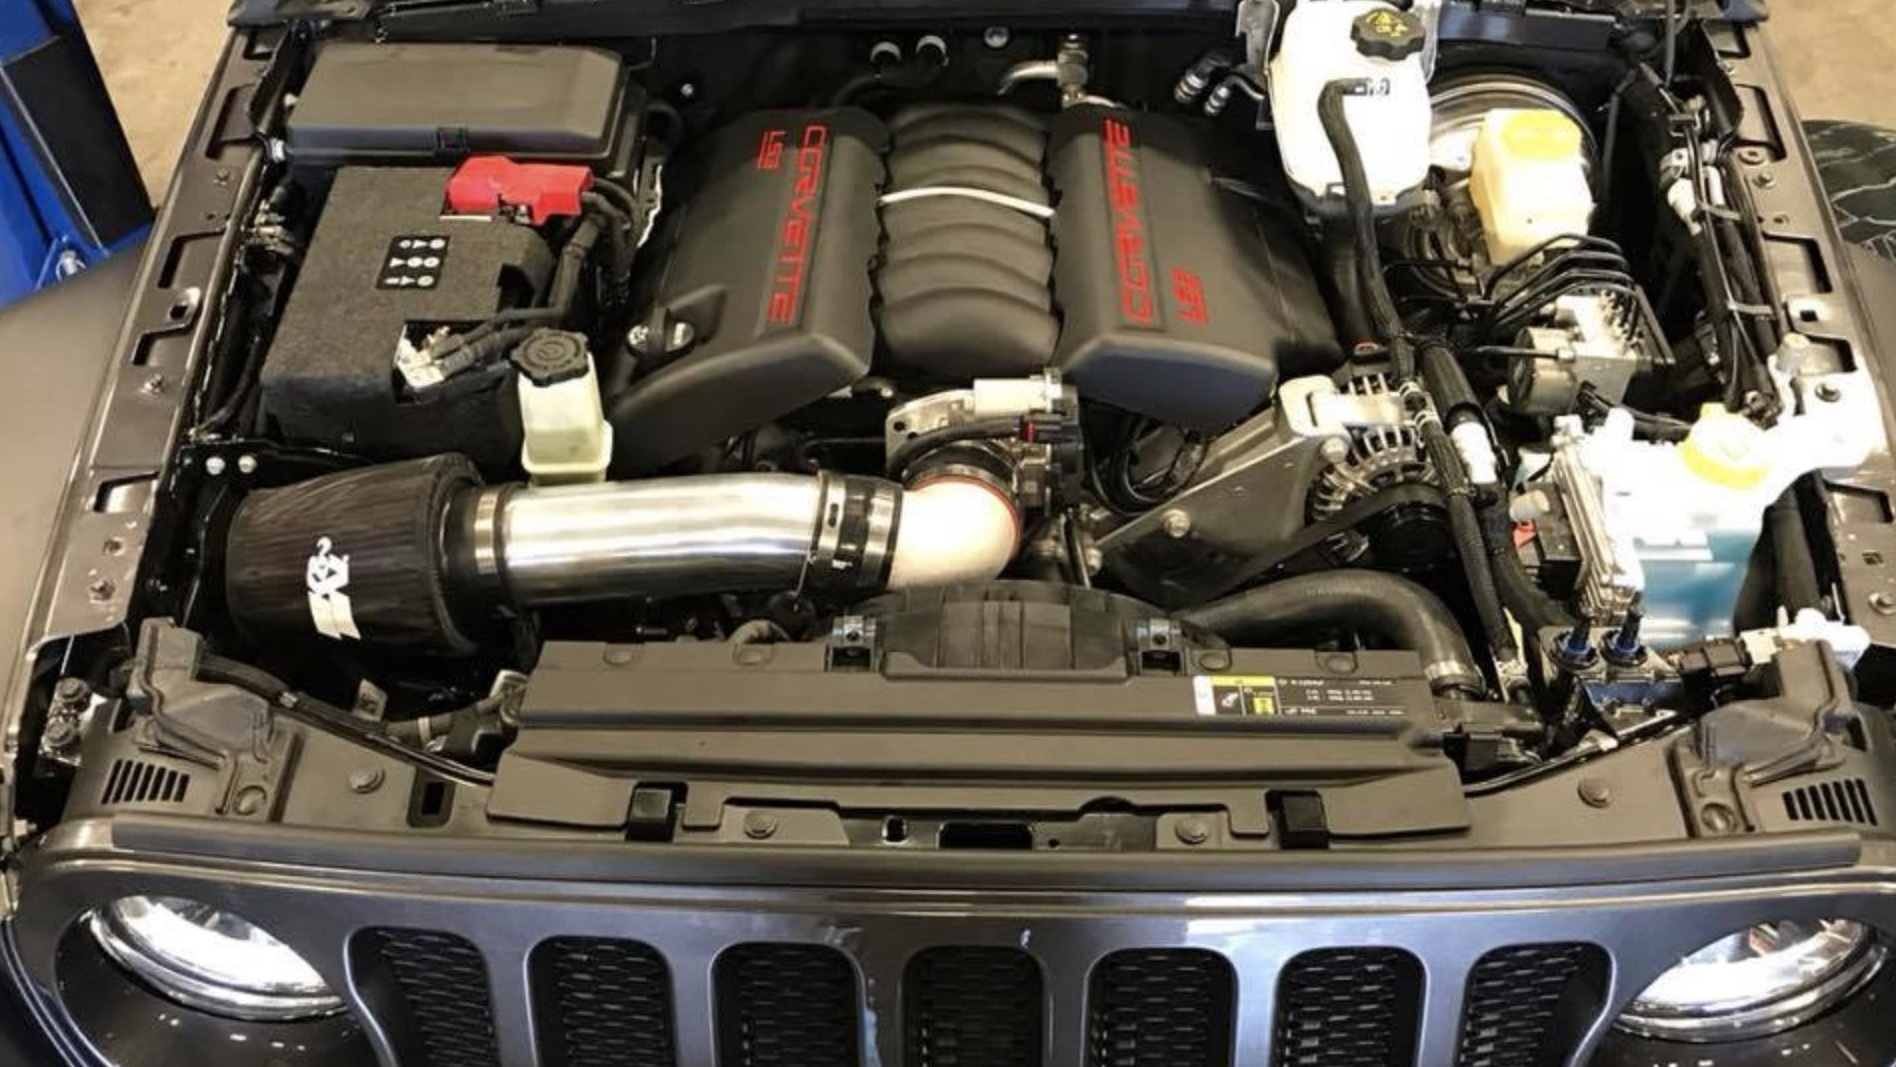 2018 Jeep Wrangler LS V-8 swap by Bruiser Conversions